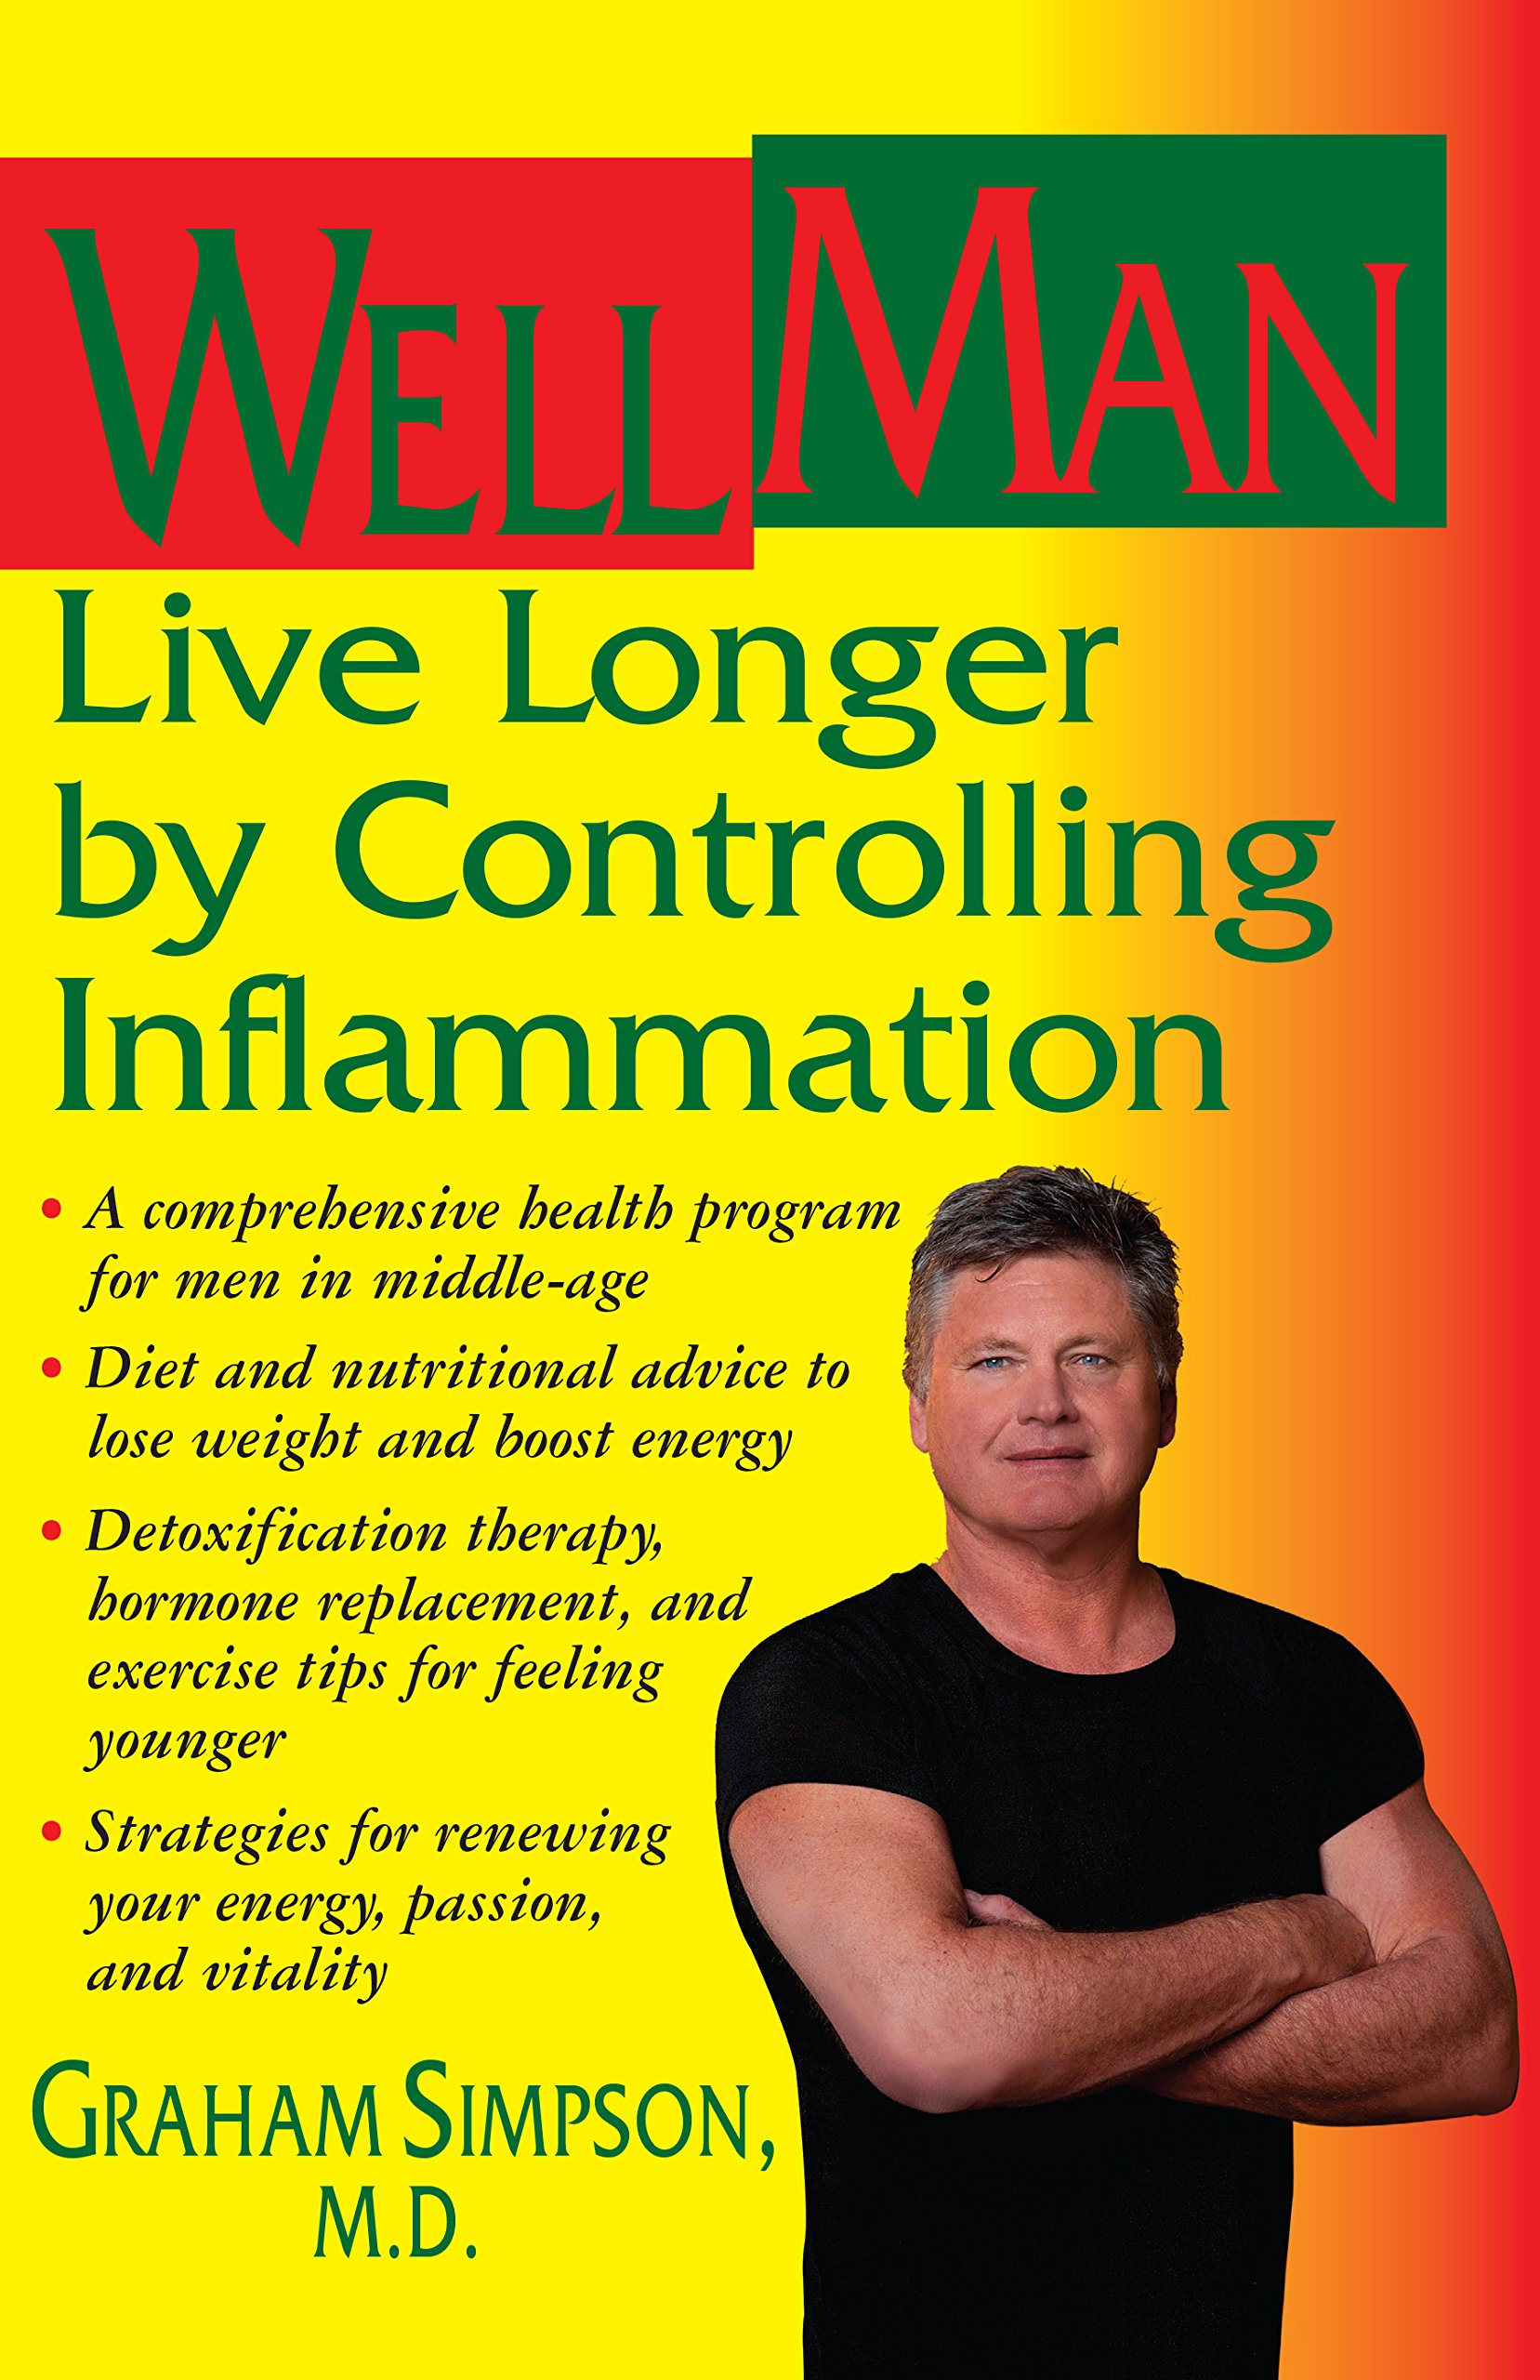 WellMan: Live Longer by Controlling Inflammation: Graham Simpson